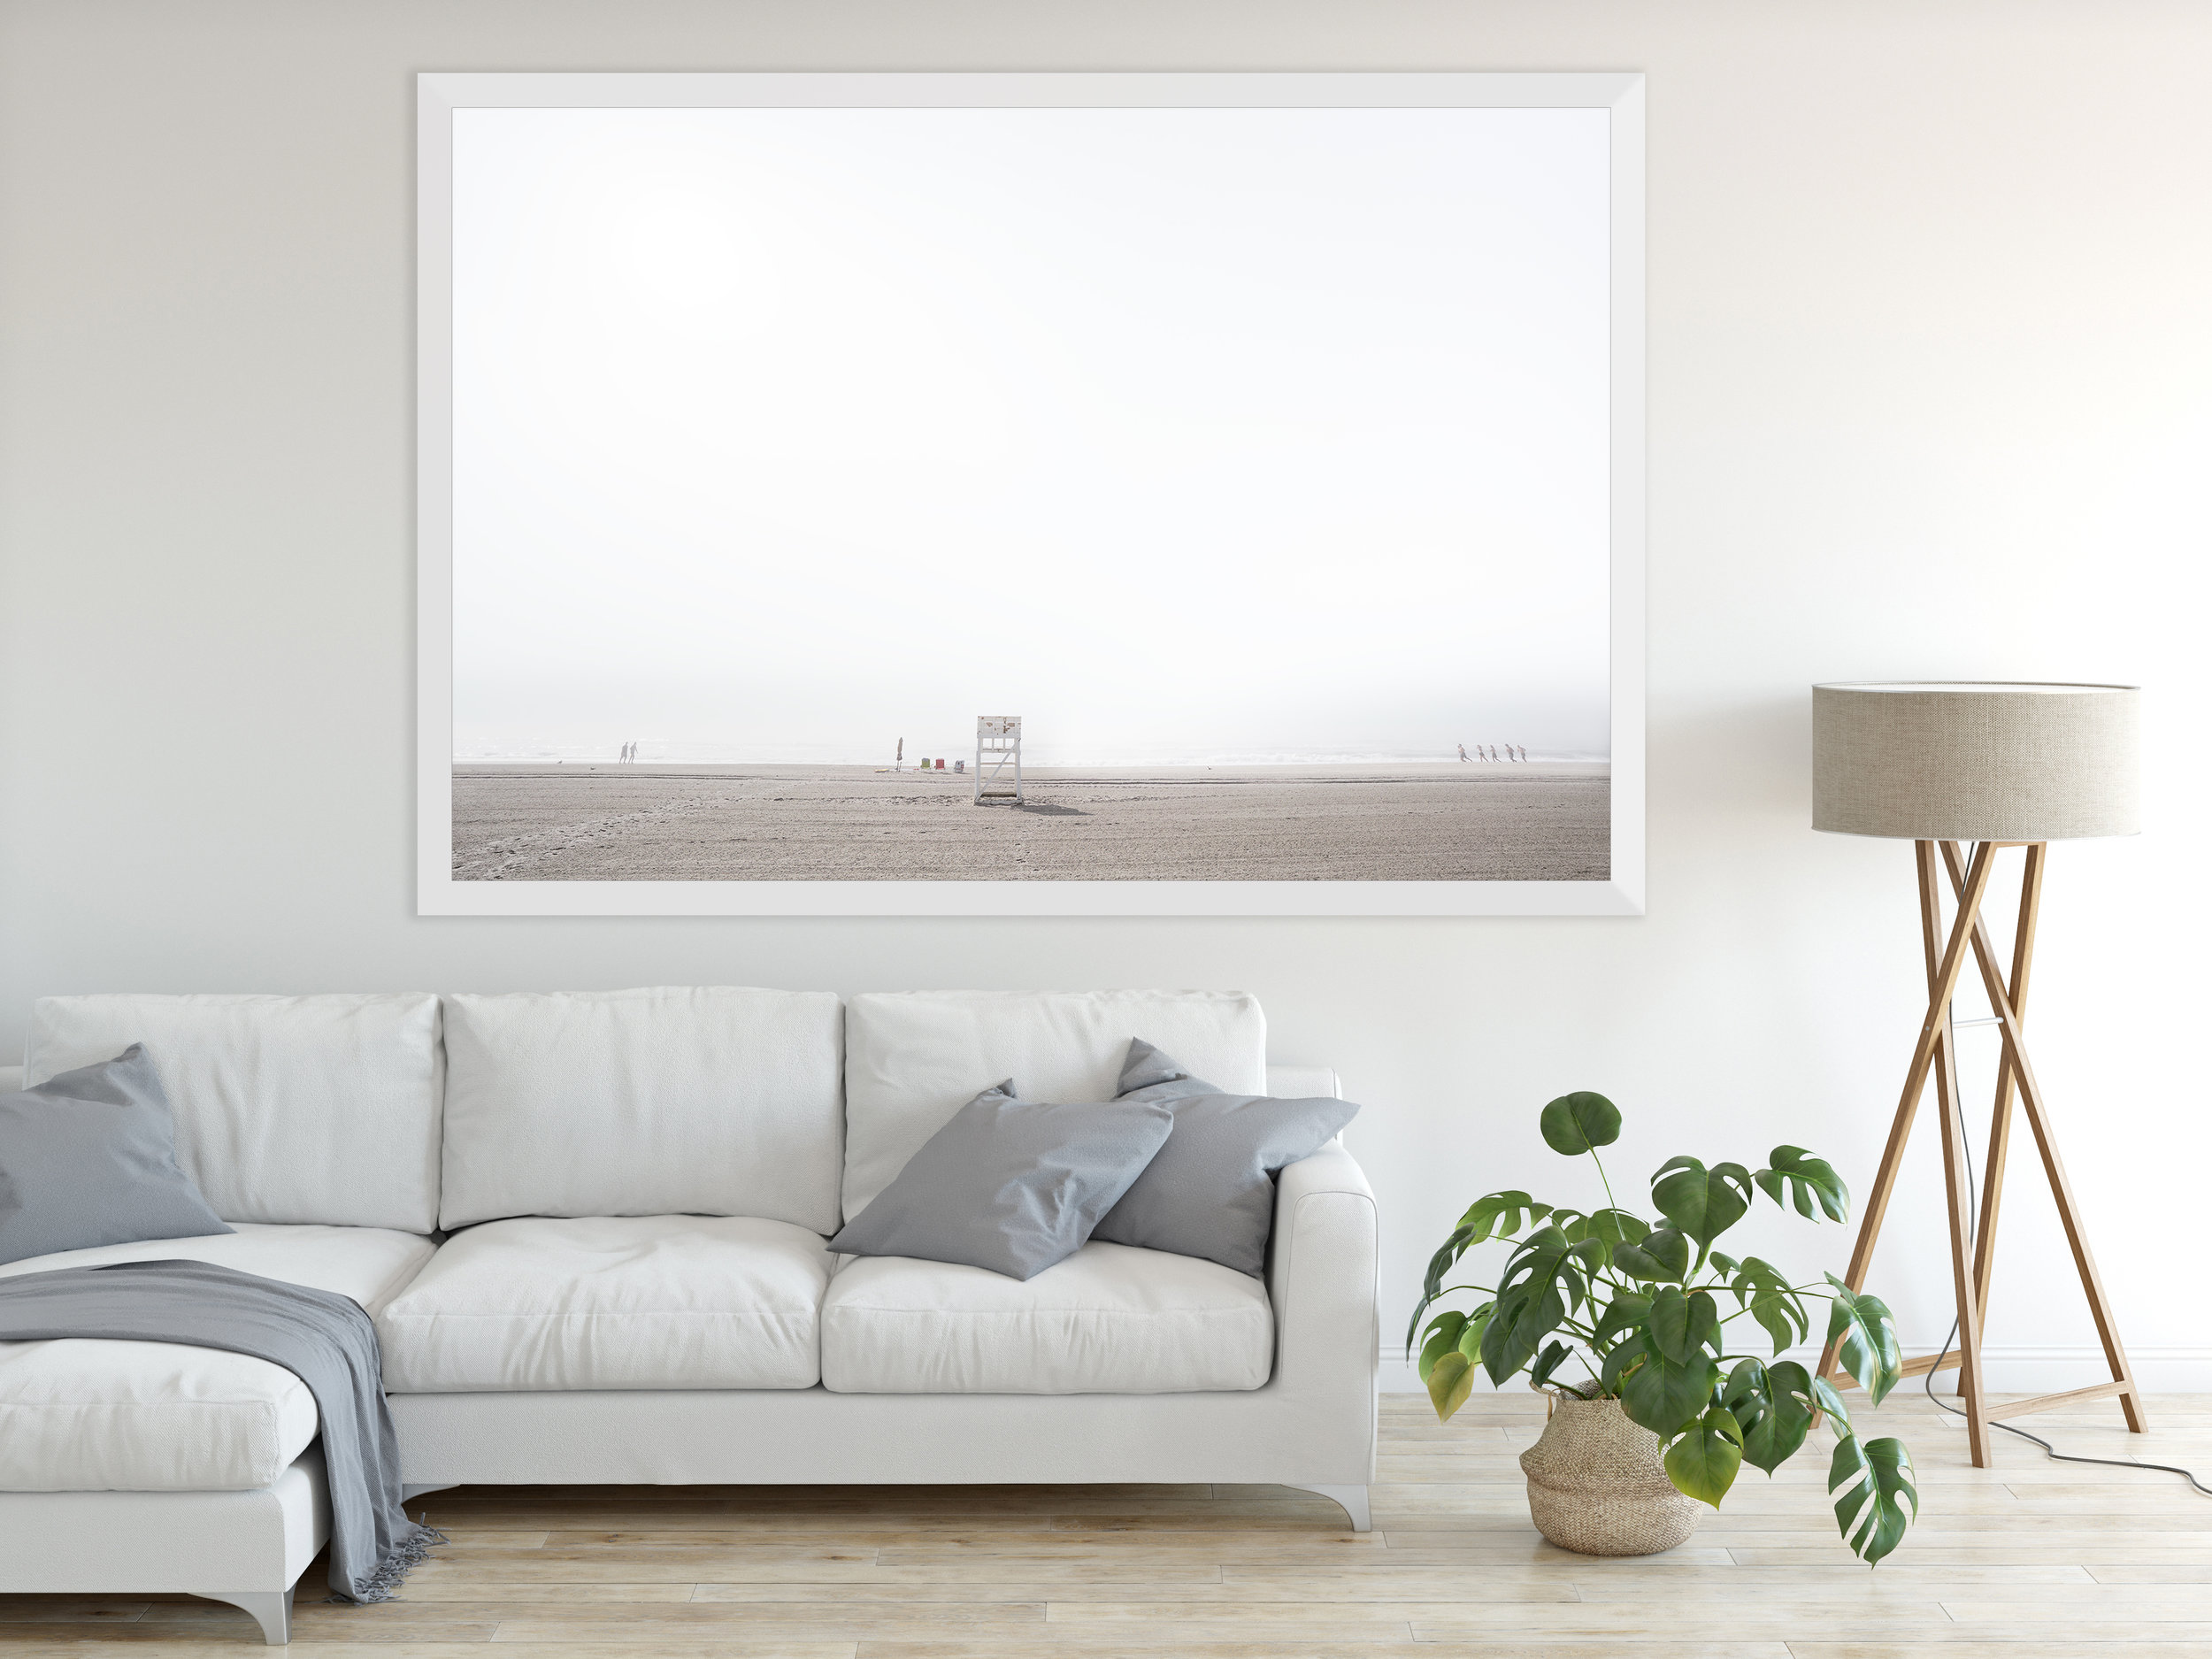 '24th Street Beach' framed in white and printed on fine art paper - ©johnguillaume